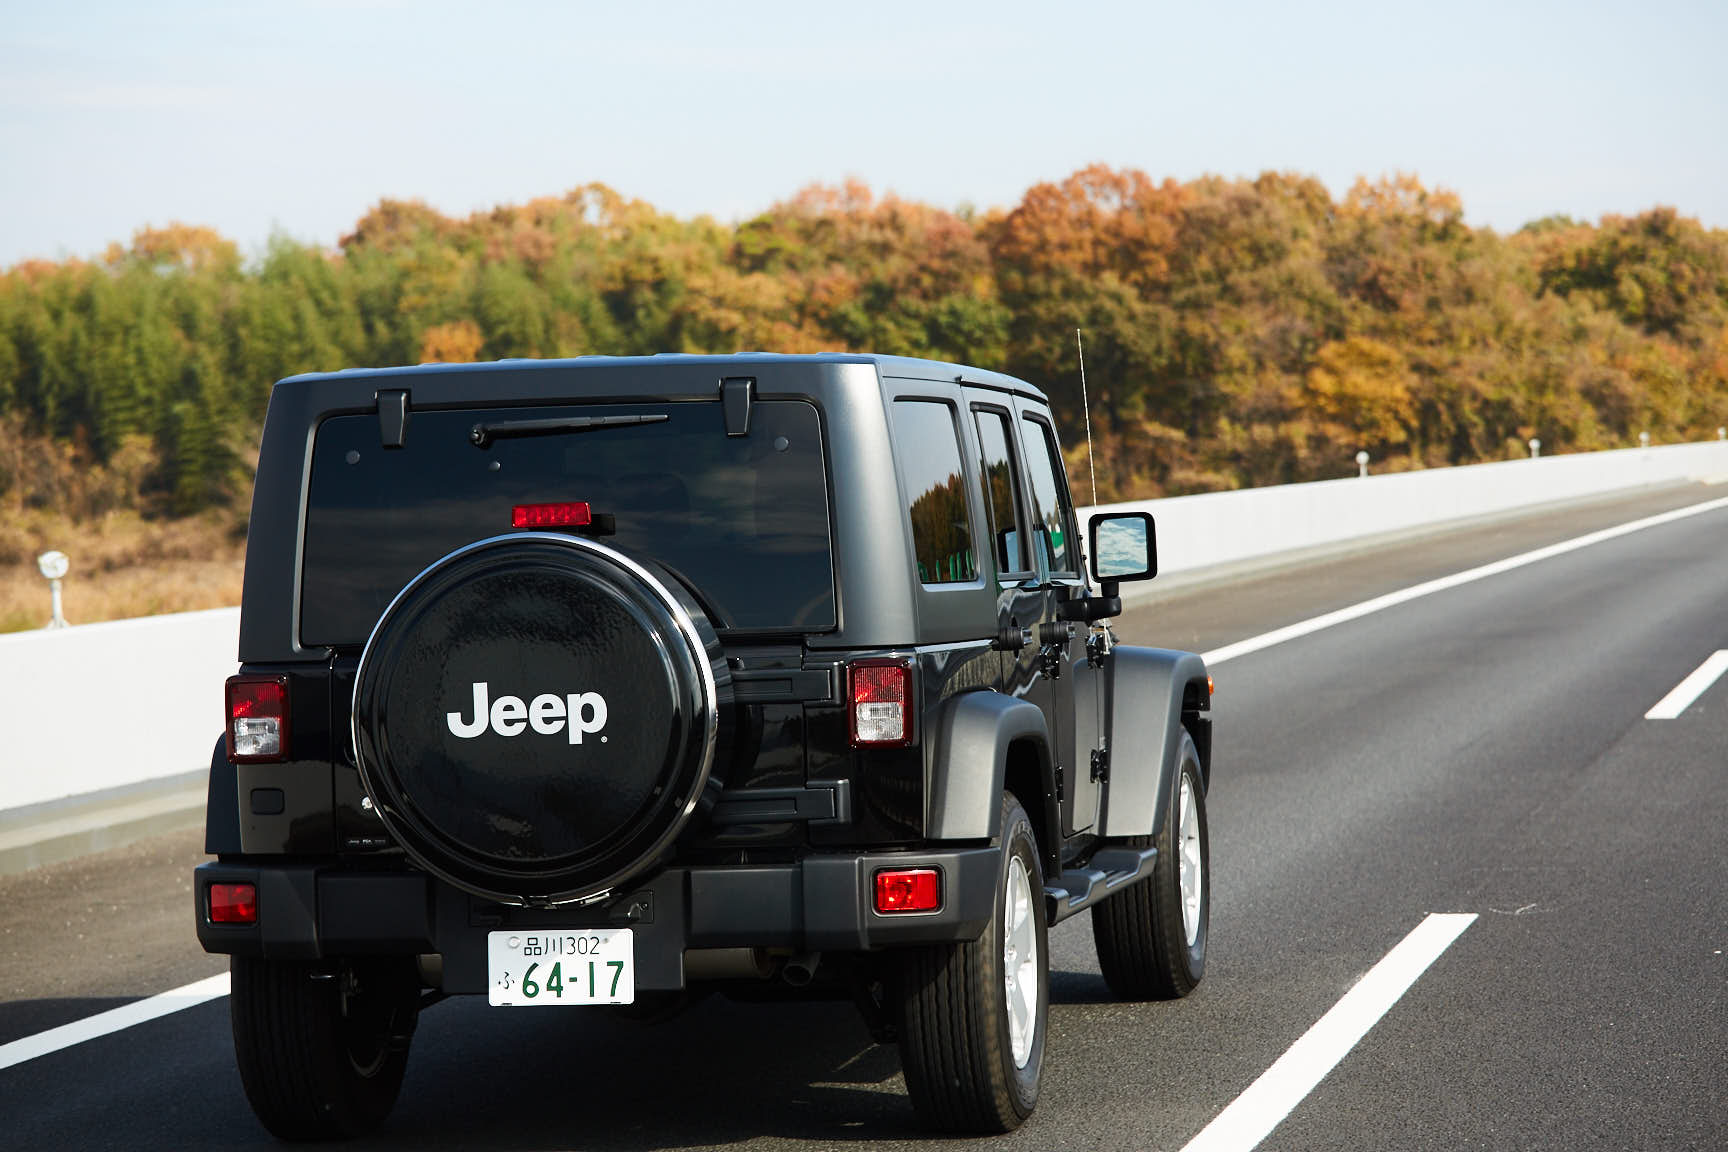 aj_124 My Jeep®,My Life. ボクとJeep®の暮らしかた。シェフ・相場正一郎